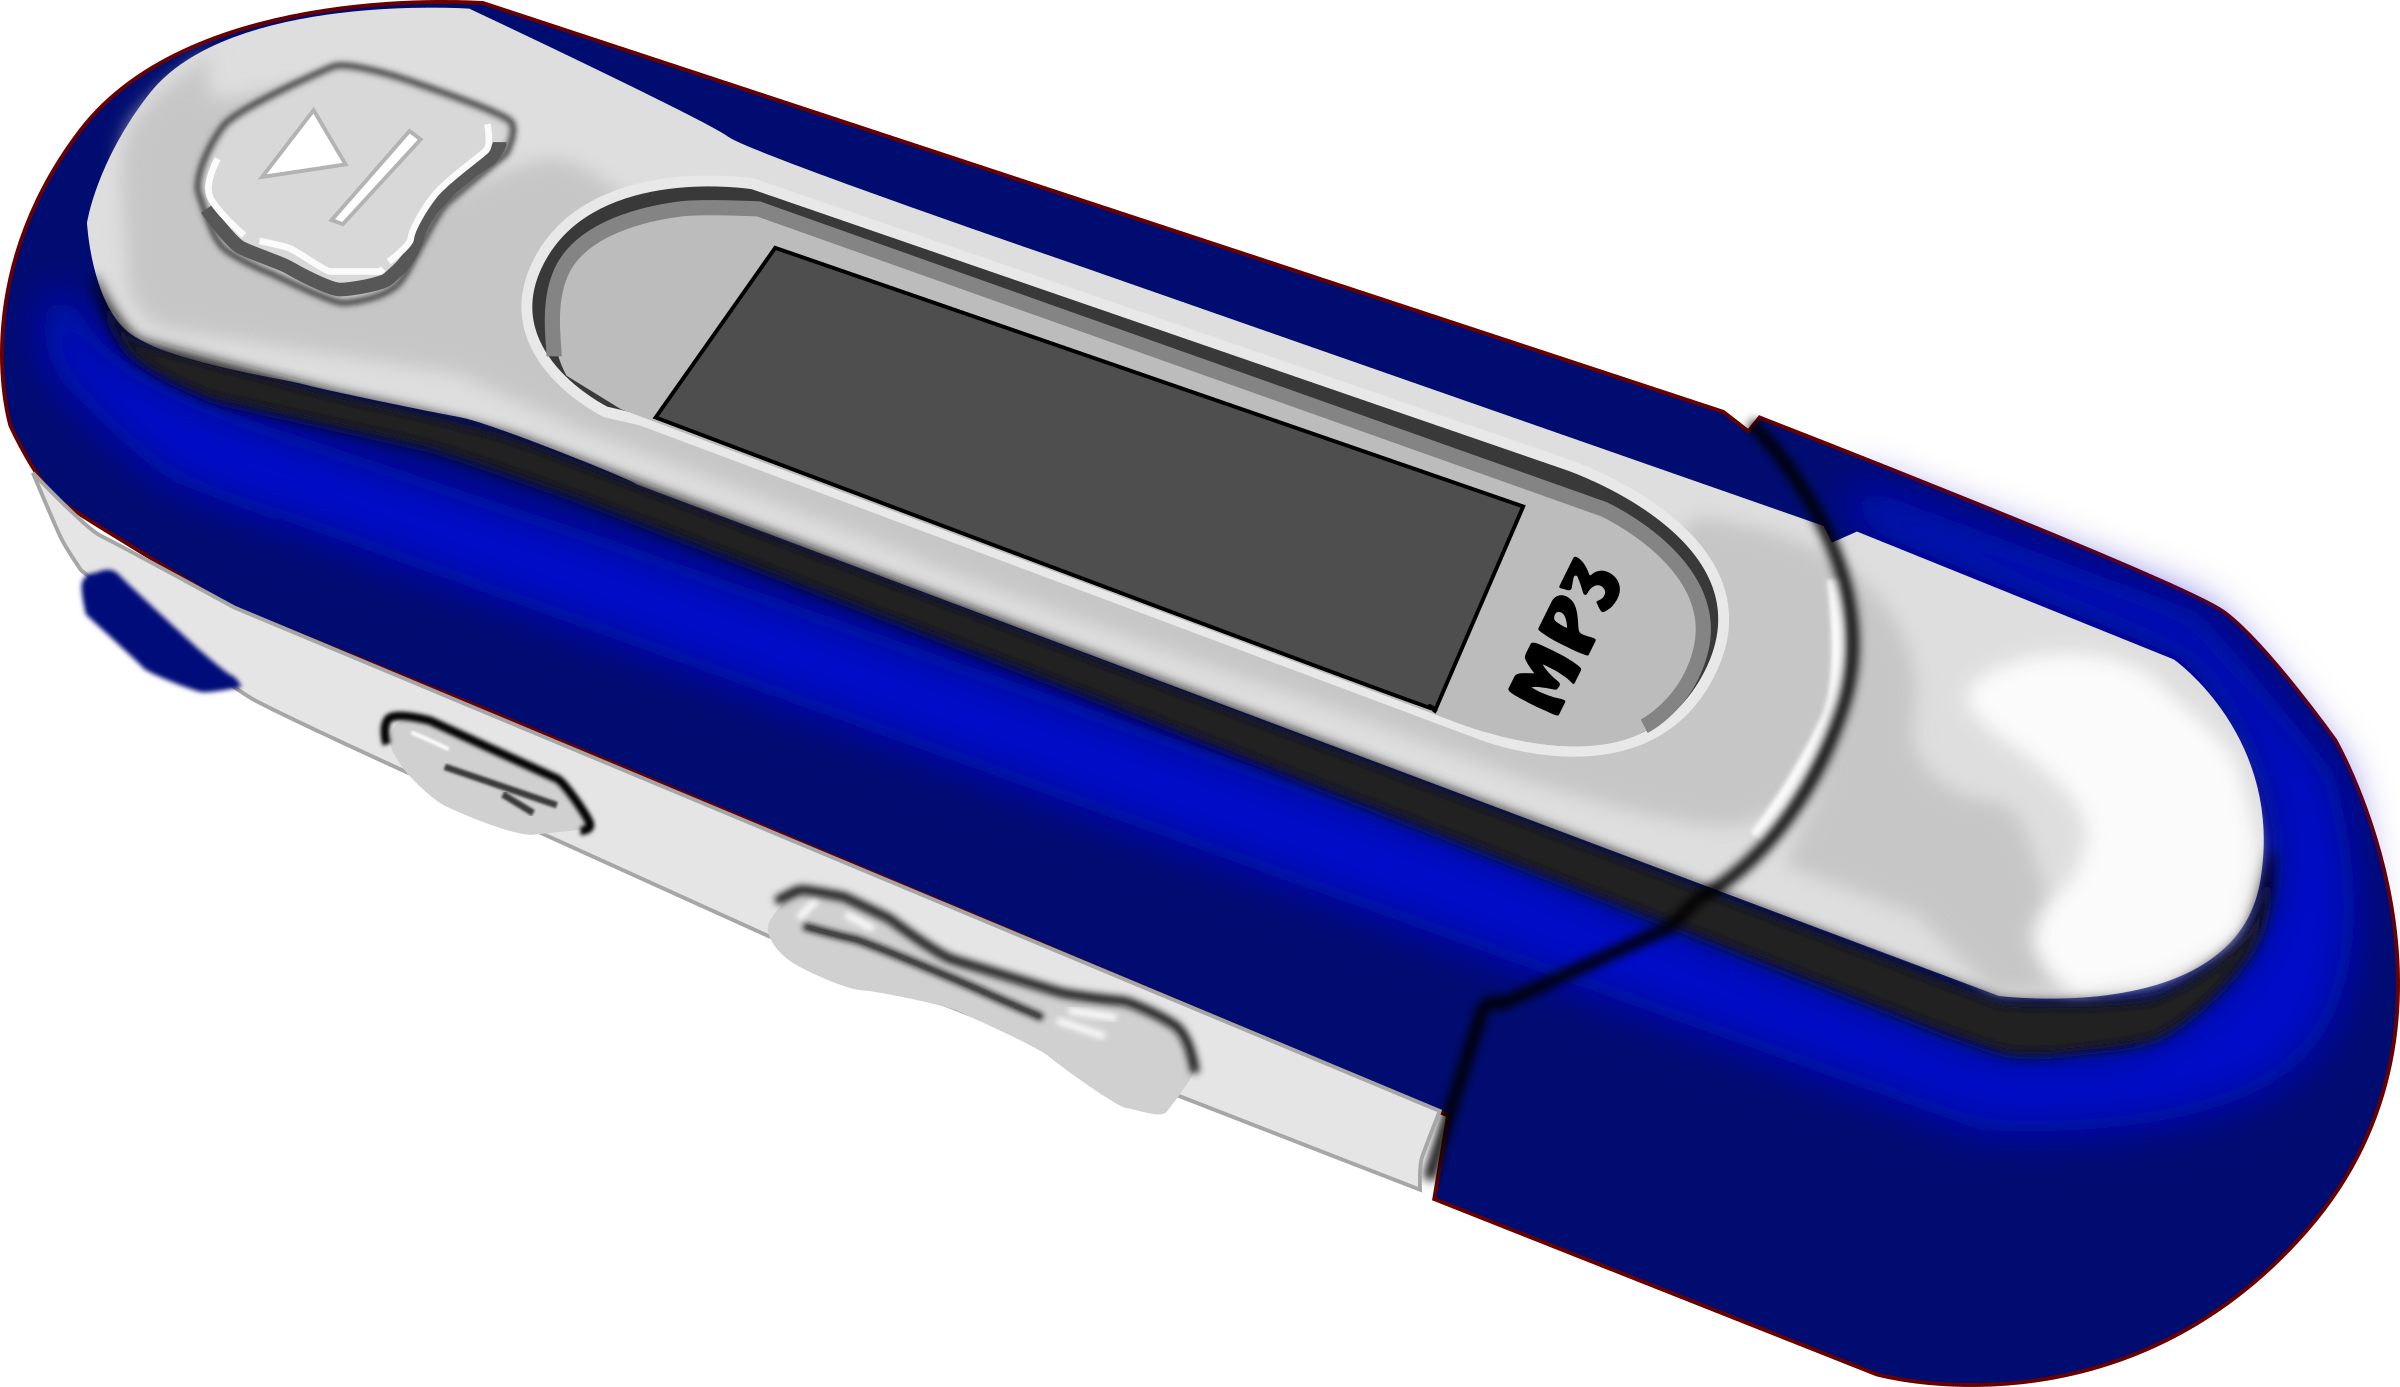 A Blue old style MP3 Player by mystica